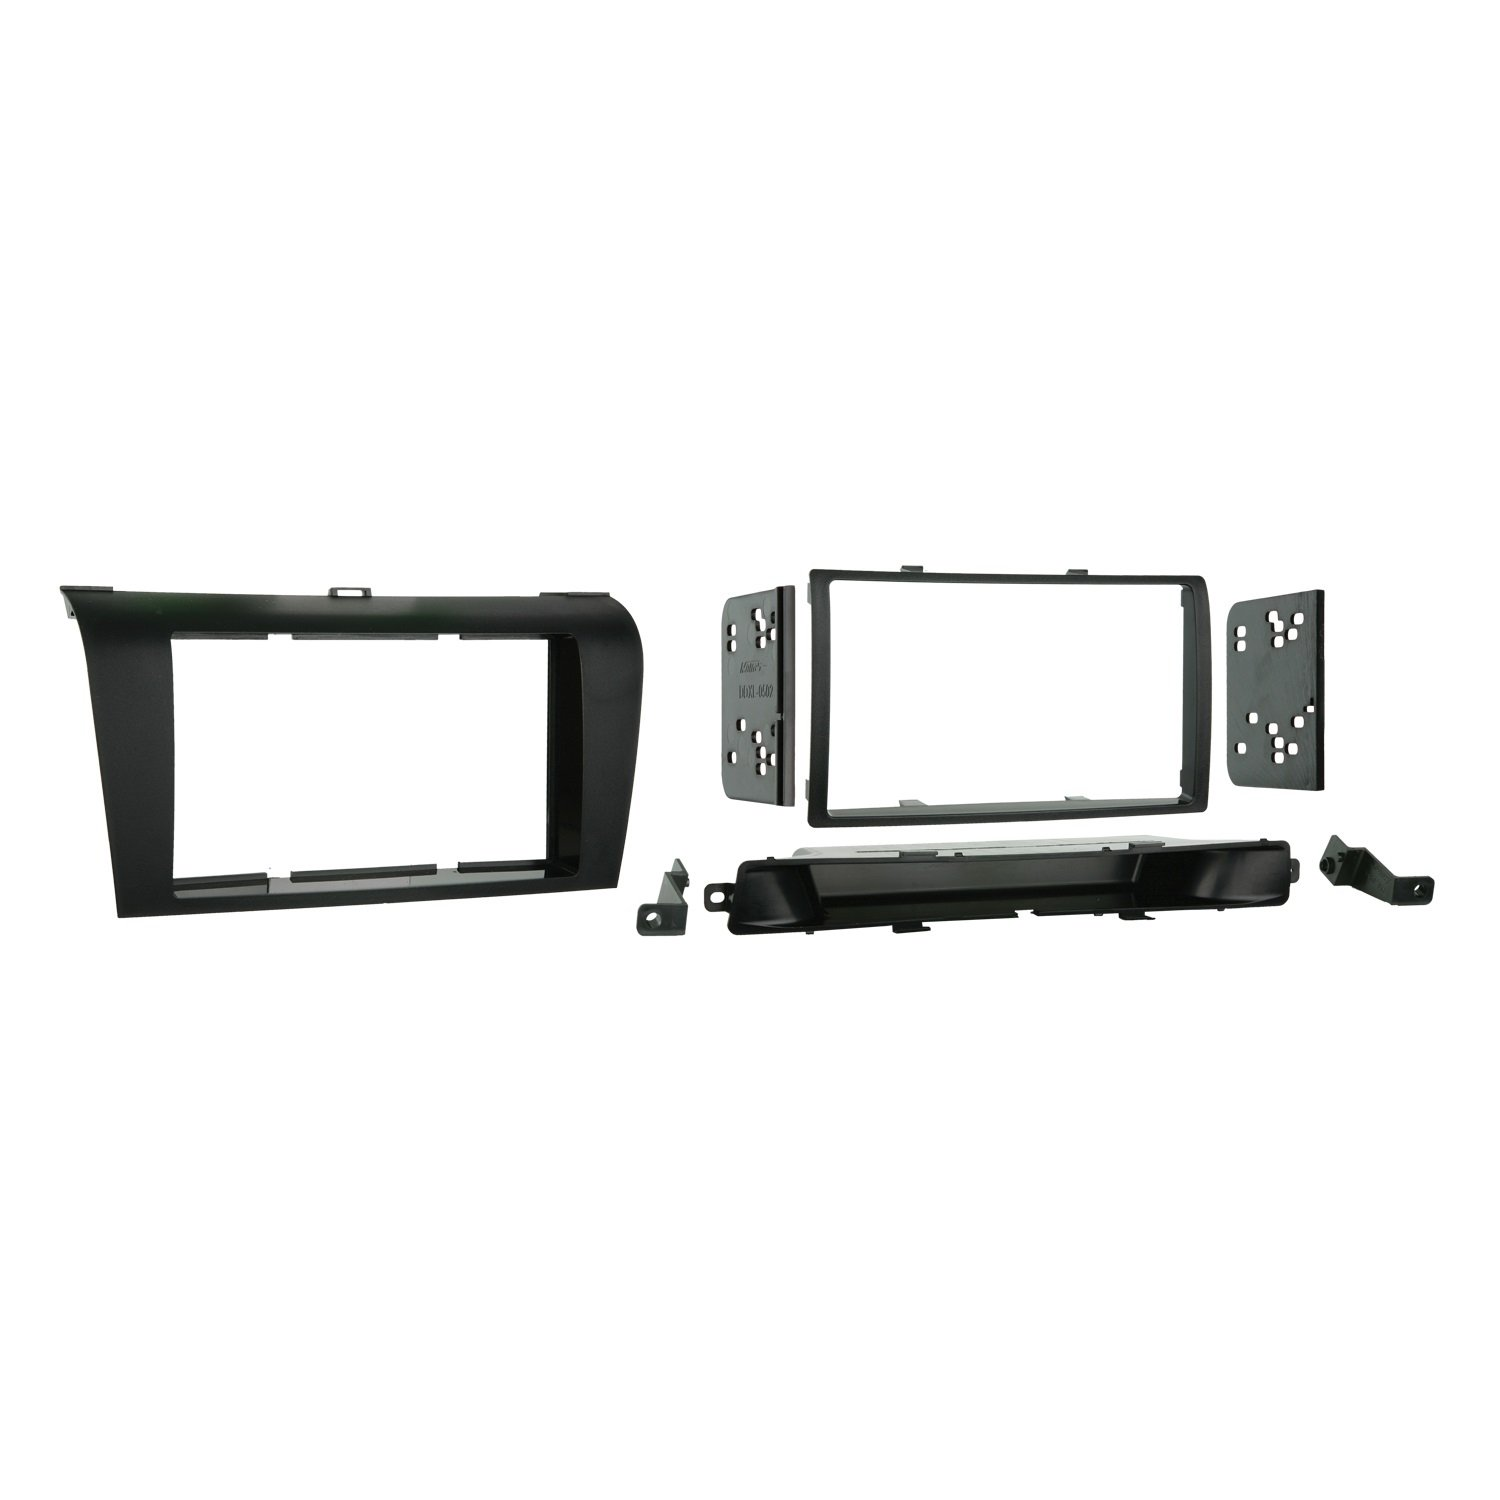 metra 70 7903 radio wiring harness for mazda 01 up power 4 speaker metra 95 7504 double din installation dash kit for 2004 2009 mazda 3 install